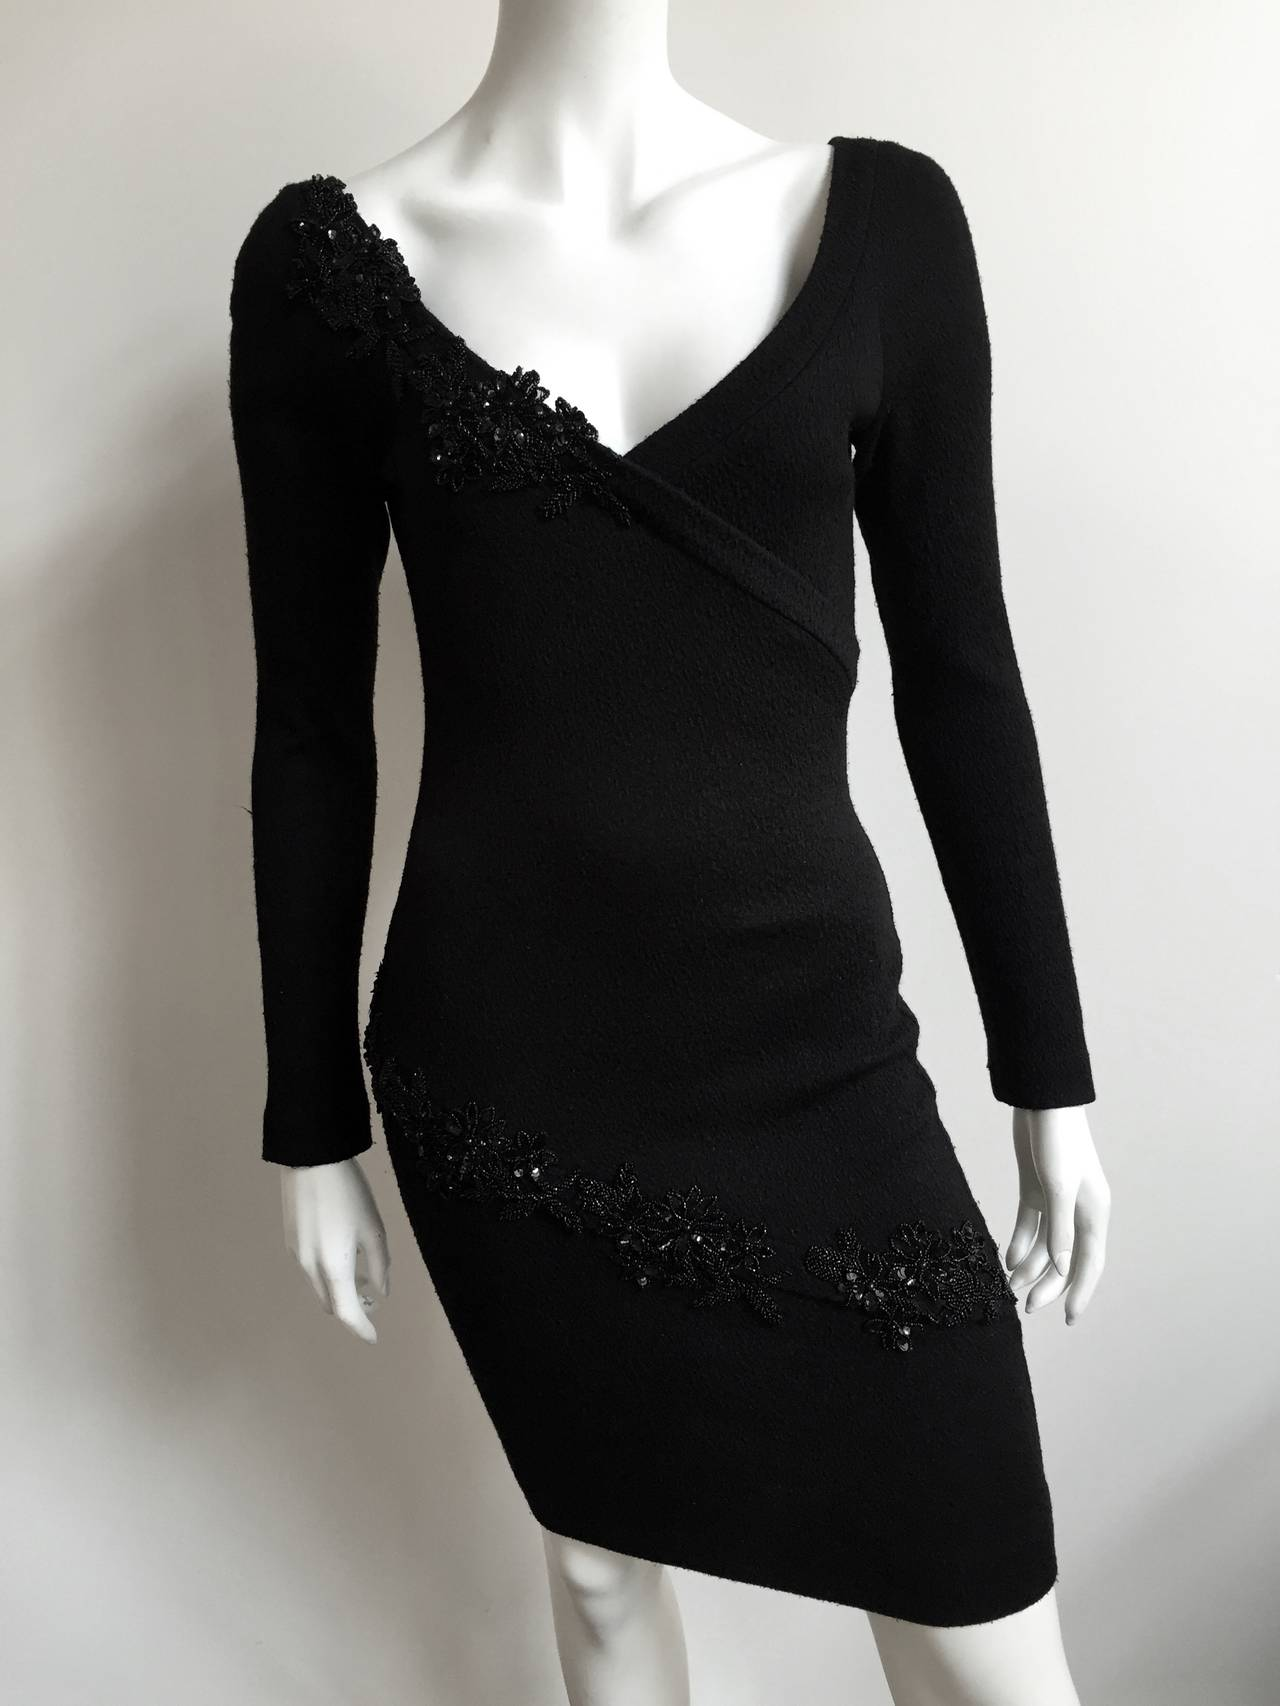 Patrick Kelly 1980s Black Evening Dress Size Small. 2